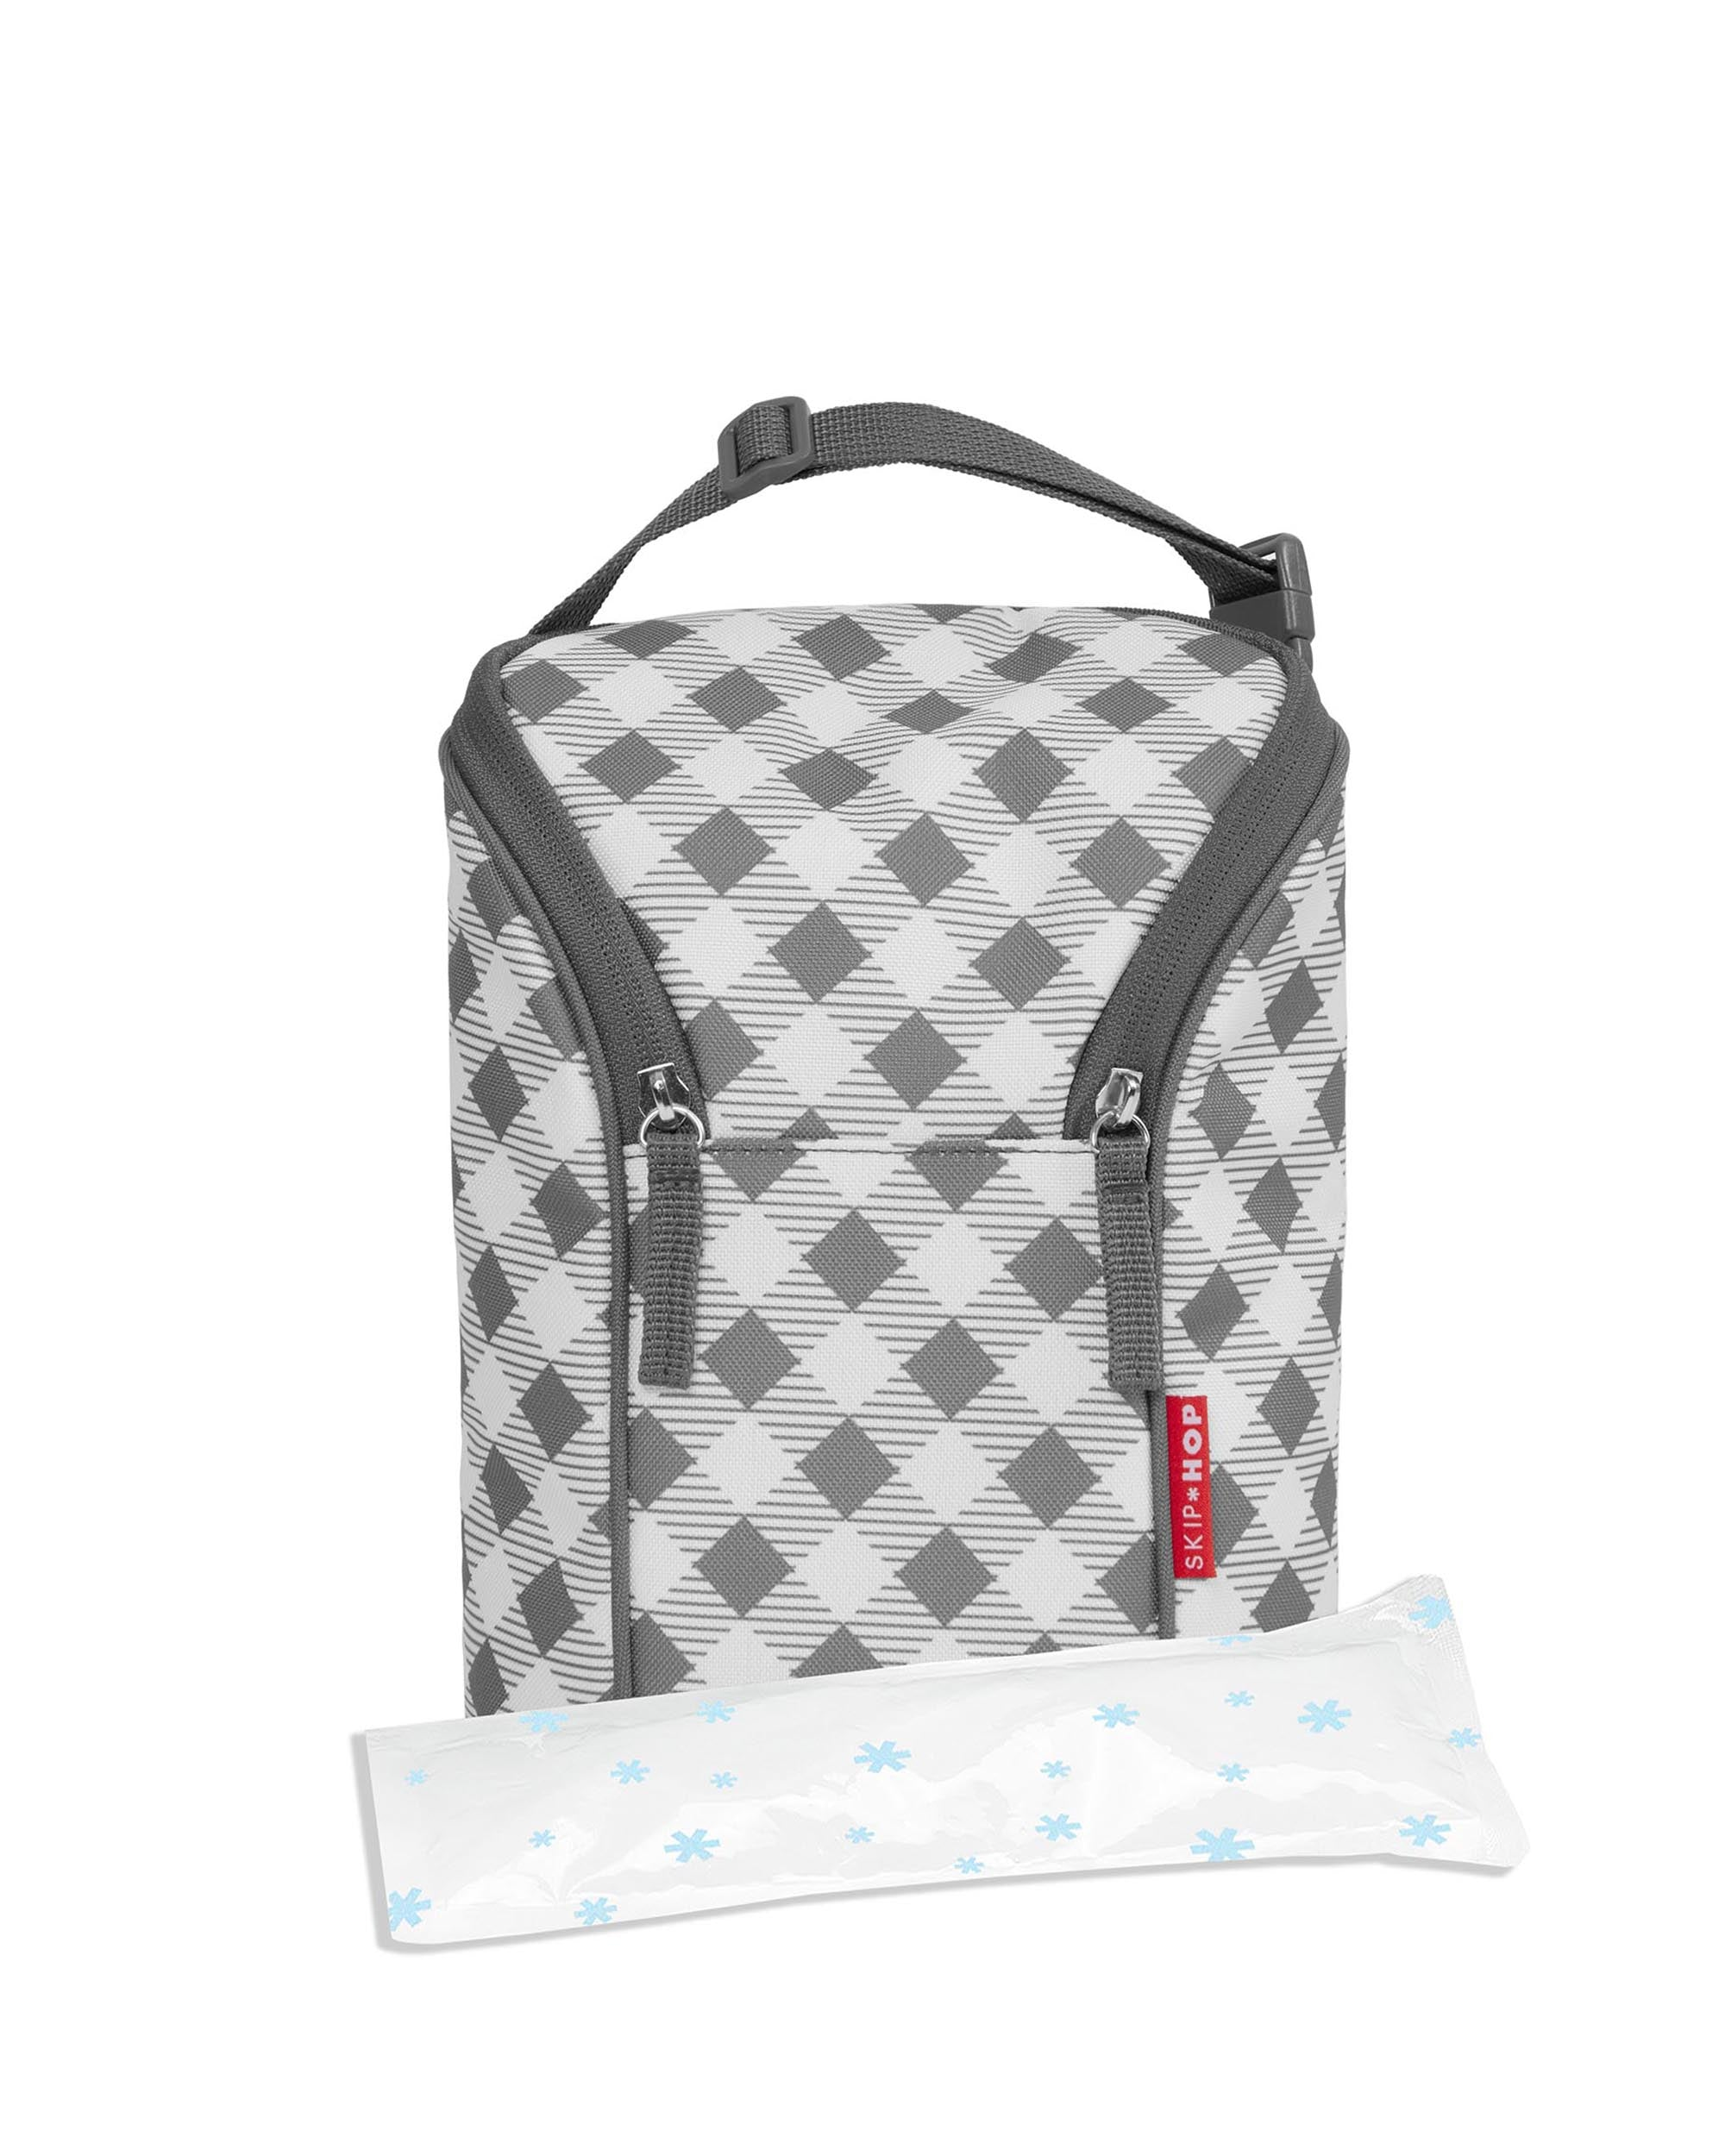 Skip Hop Grab & Go Double Bottle Bag in Gingham